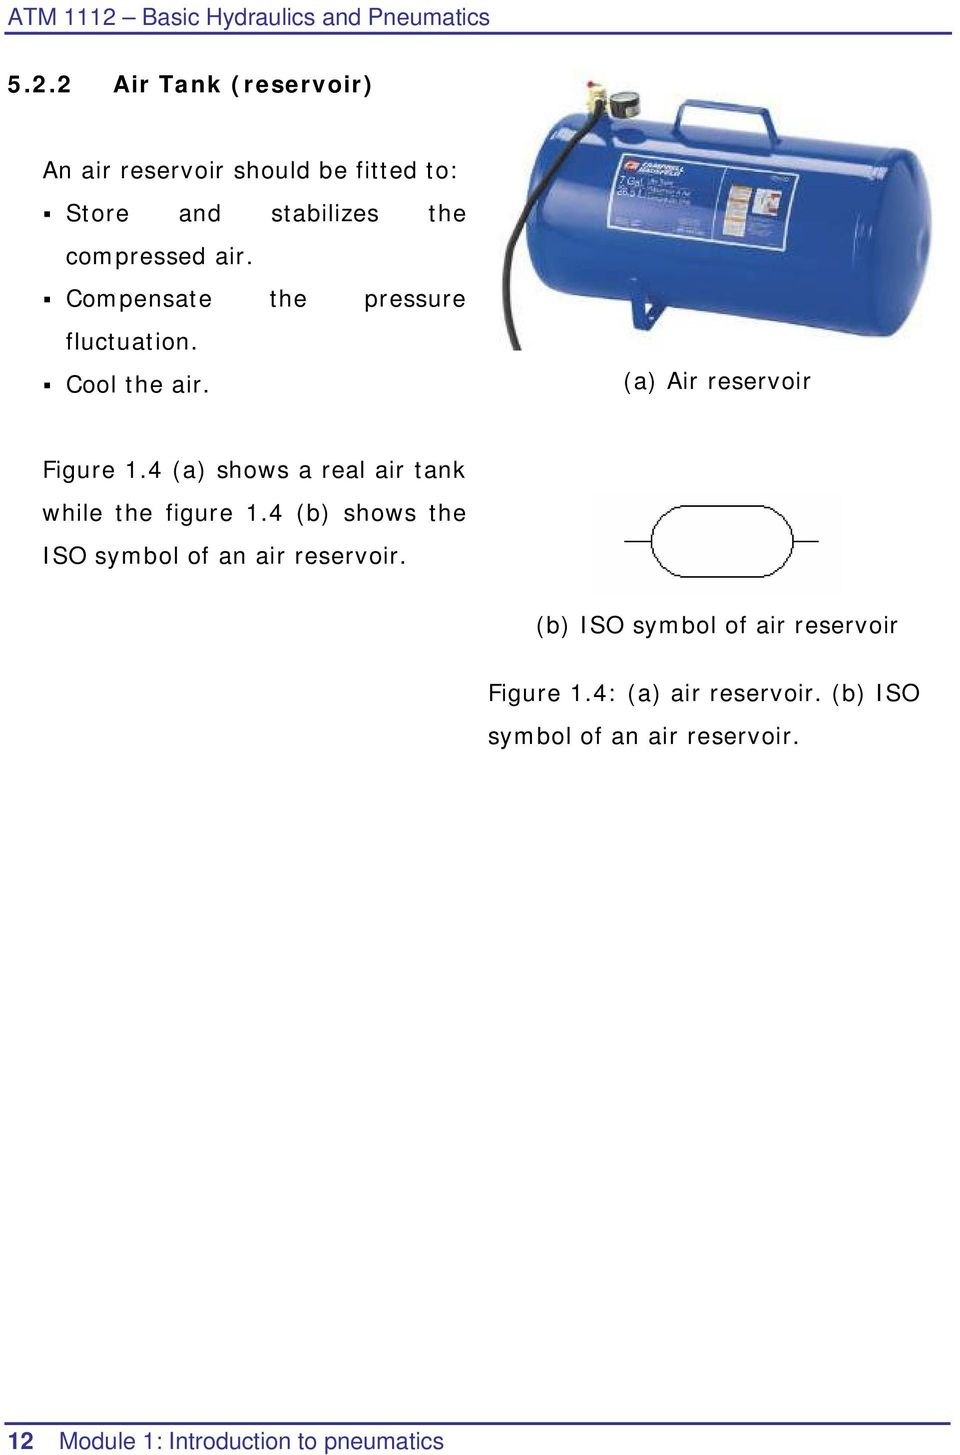 4 (a) shows a real air tank while the figure 1.4 (b) shows the ISO symbol of an air reservoir.